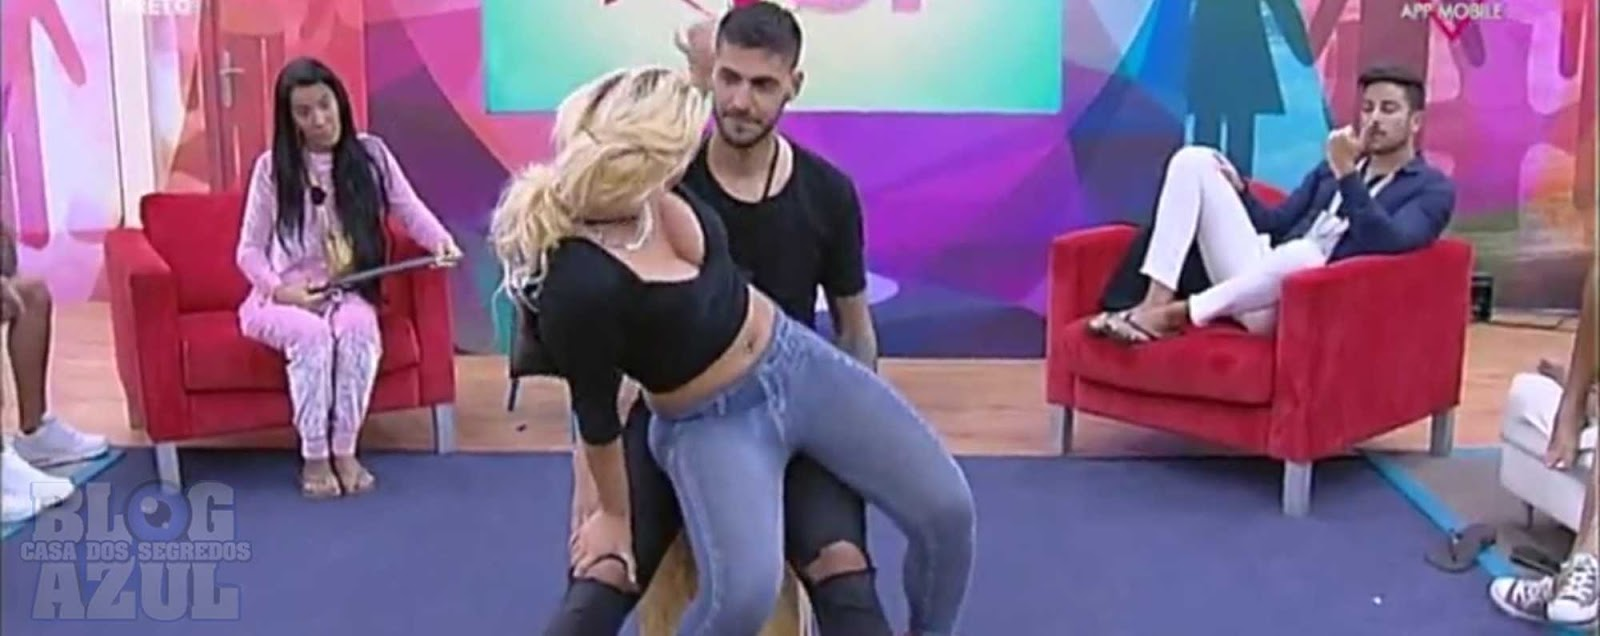 how to do a lap dance